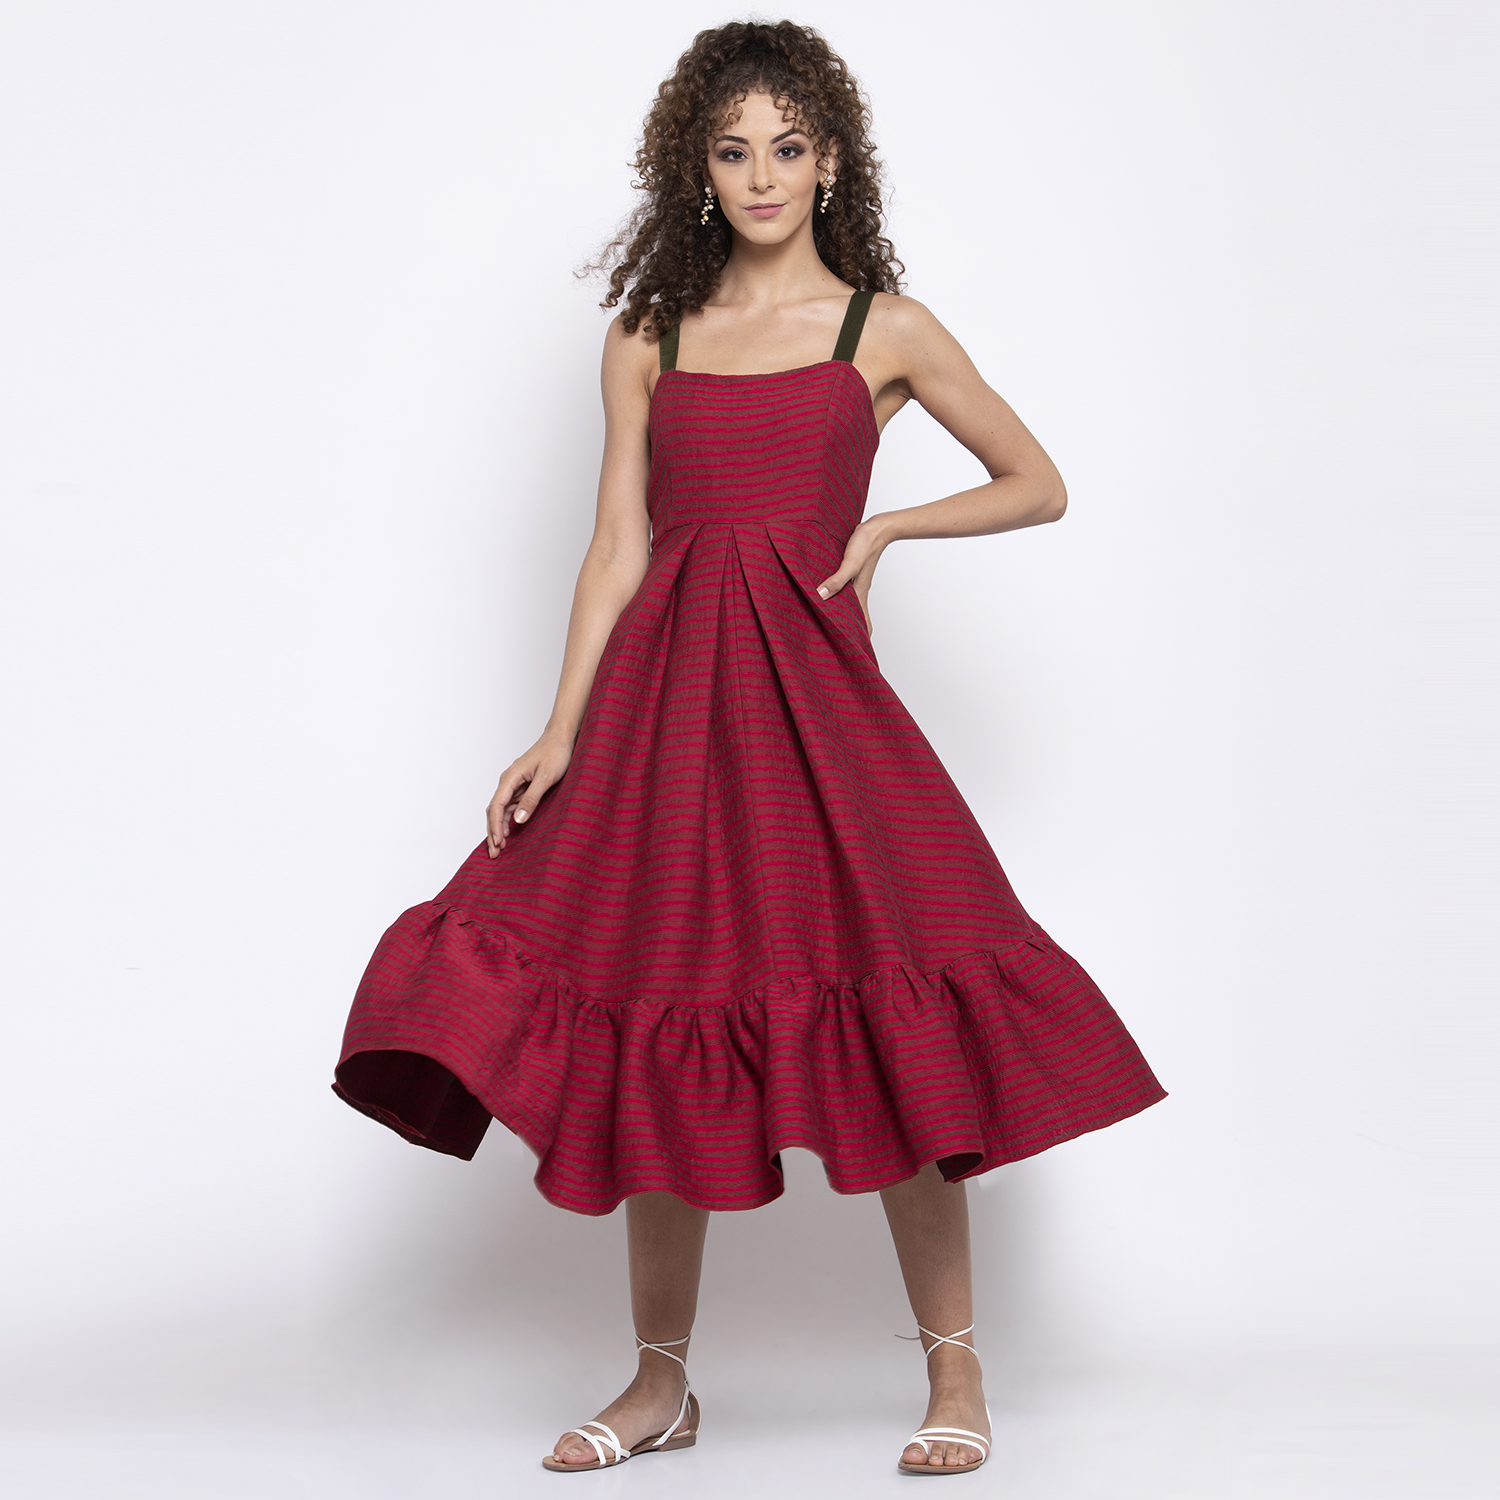 Red texture dress with frill at bottom